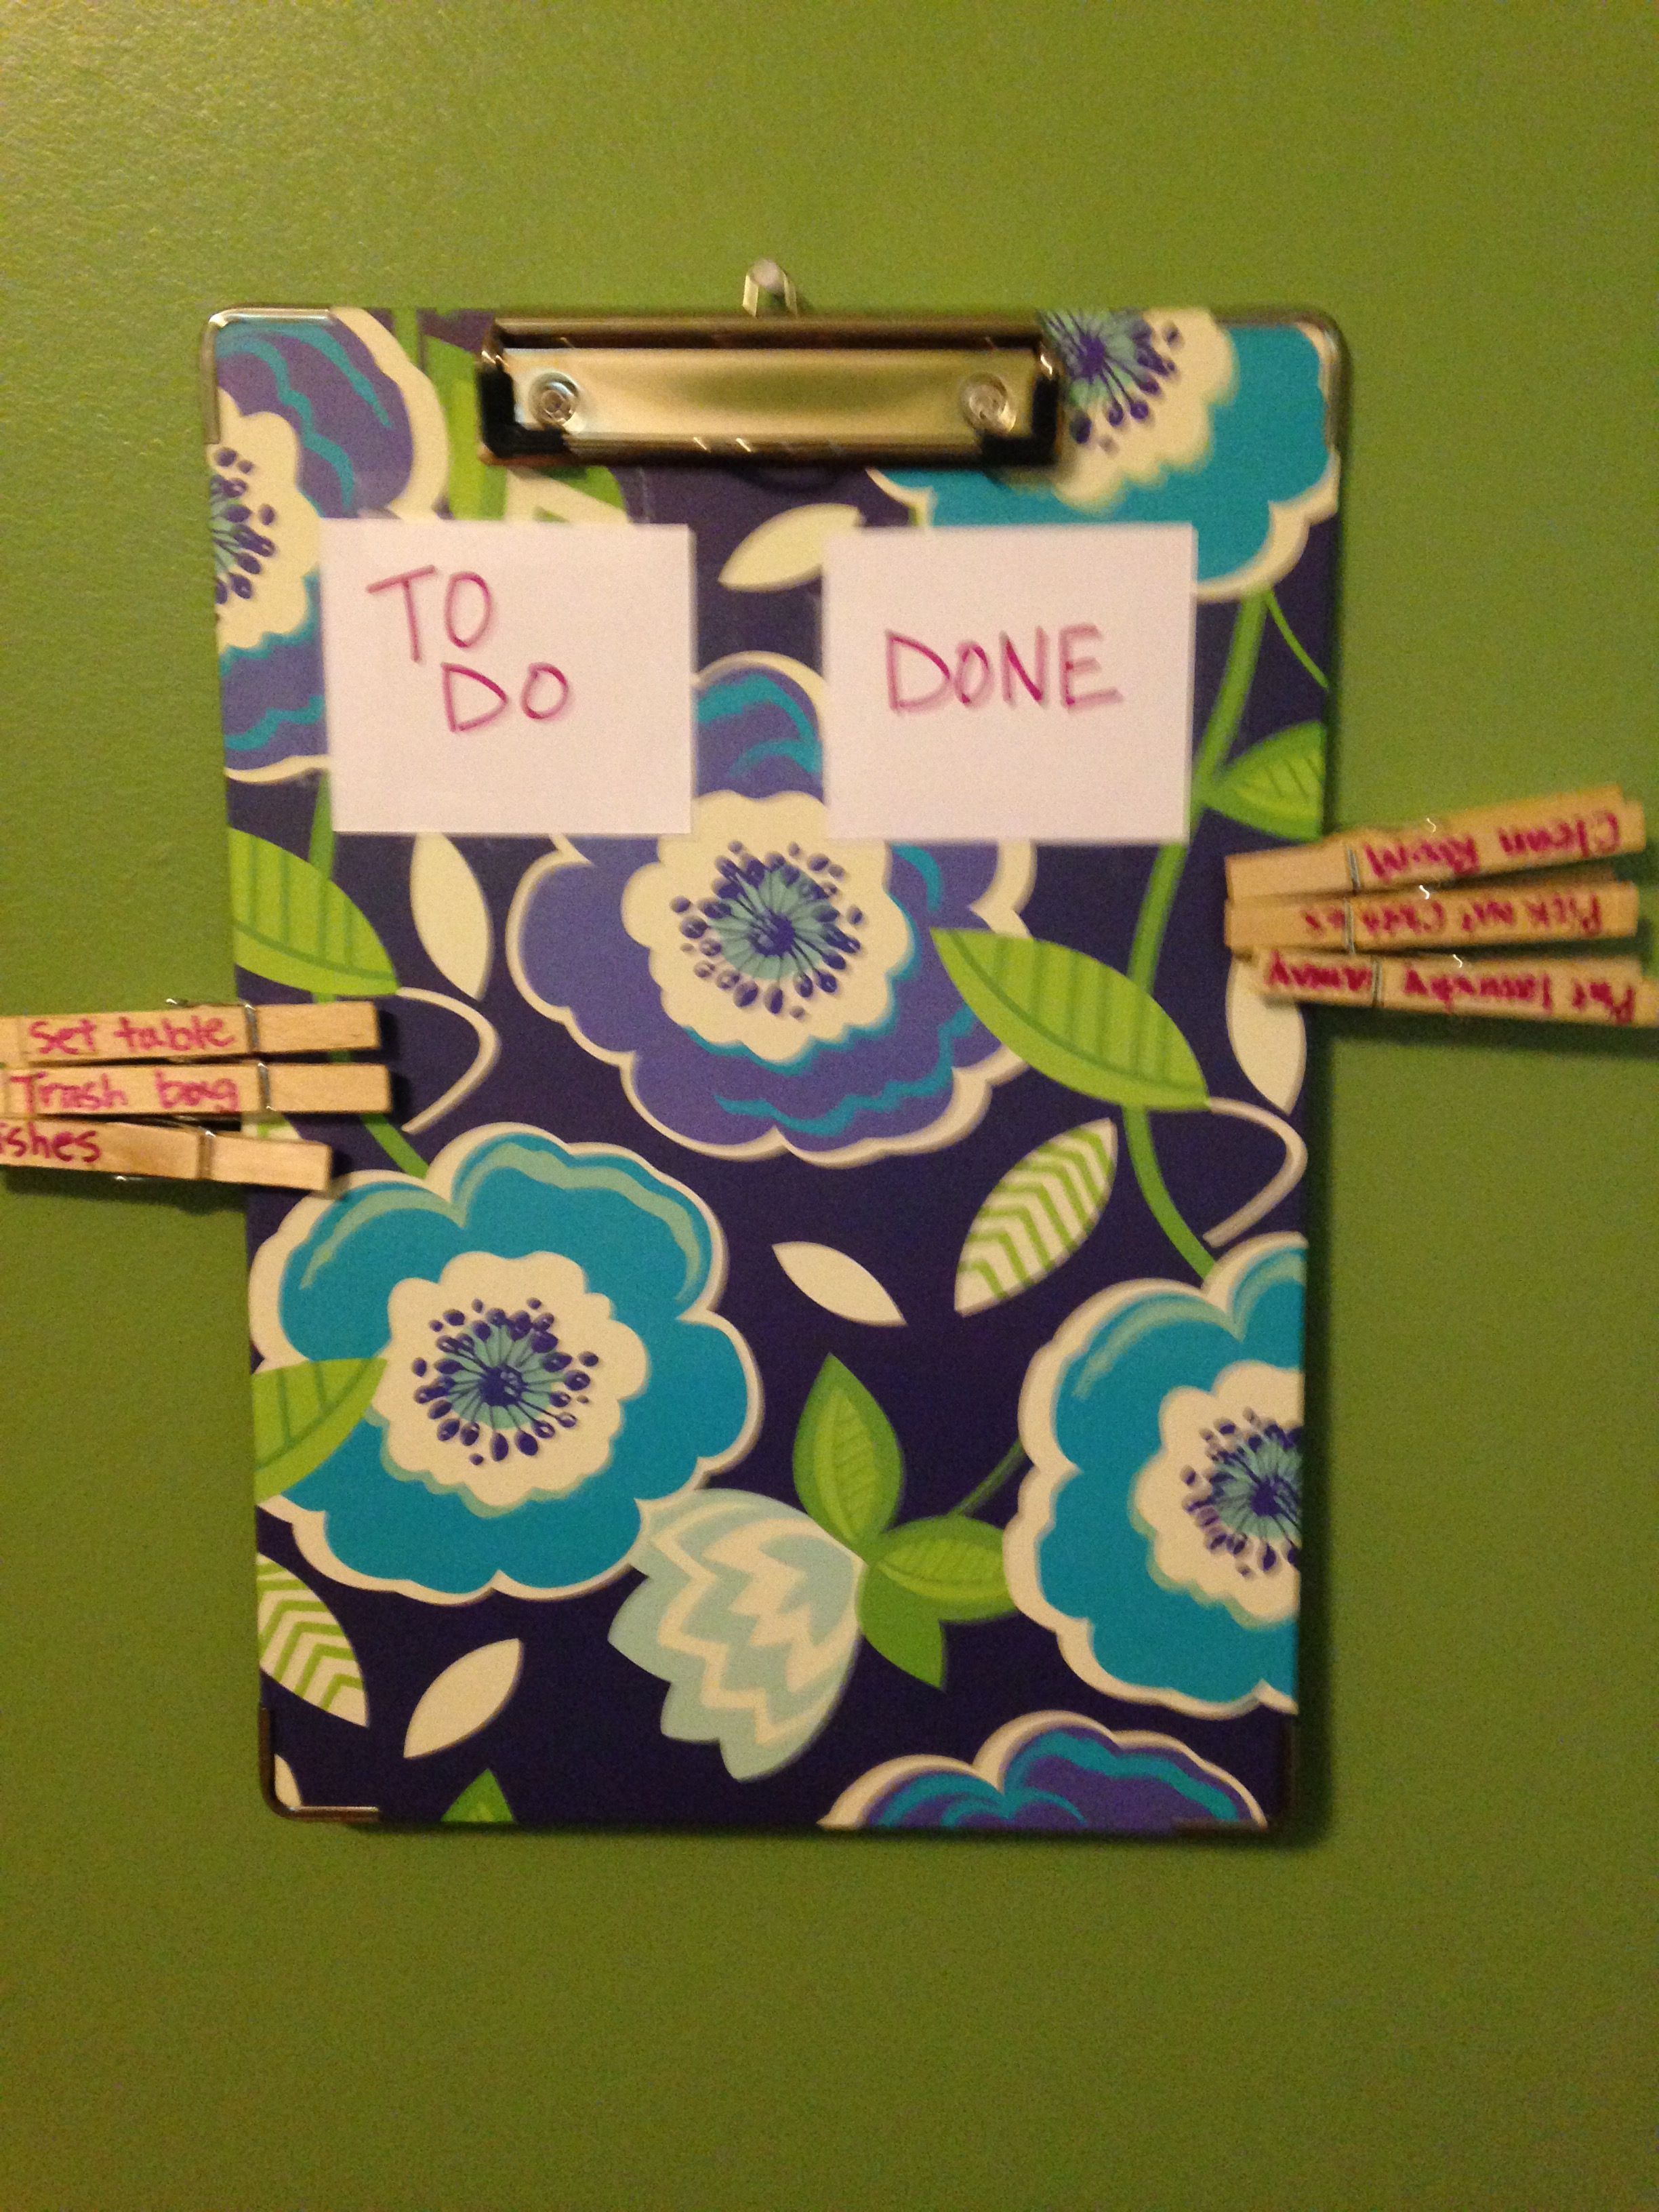 Chore chart with clipboard and clothespins for 5 year old